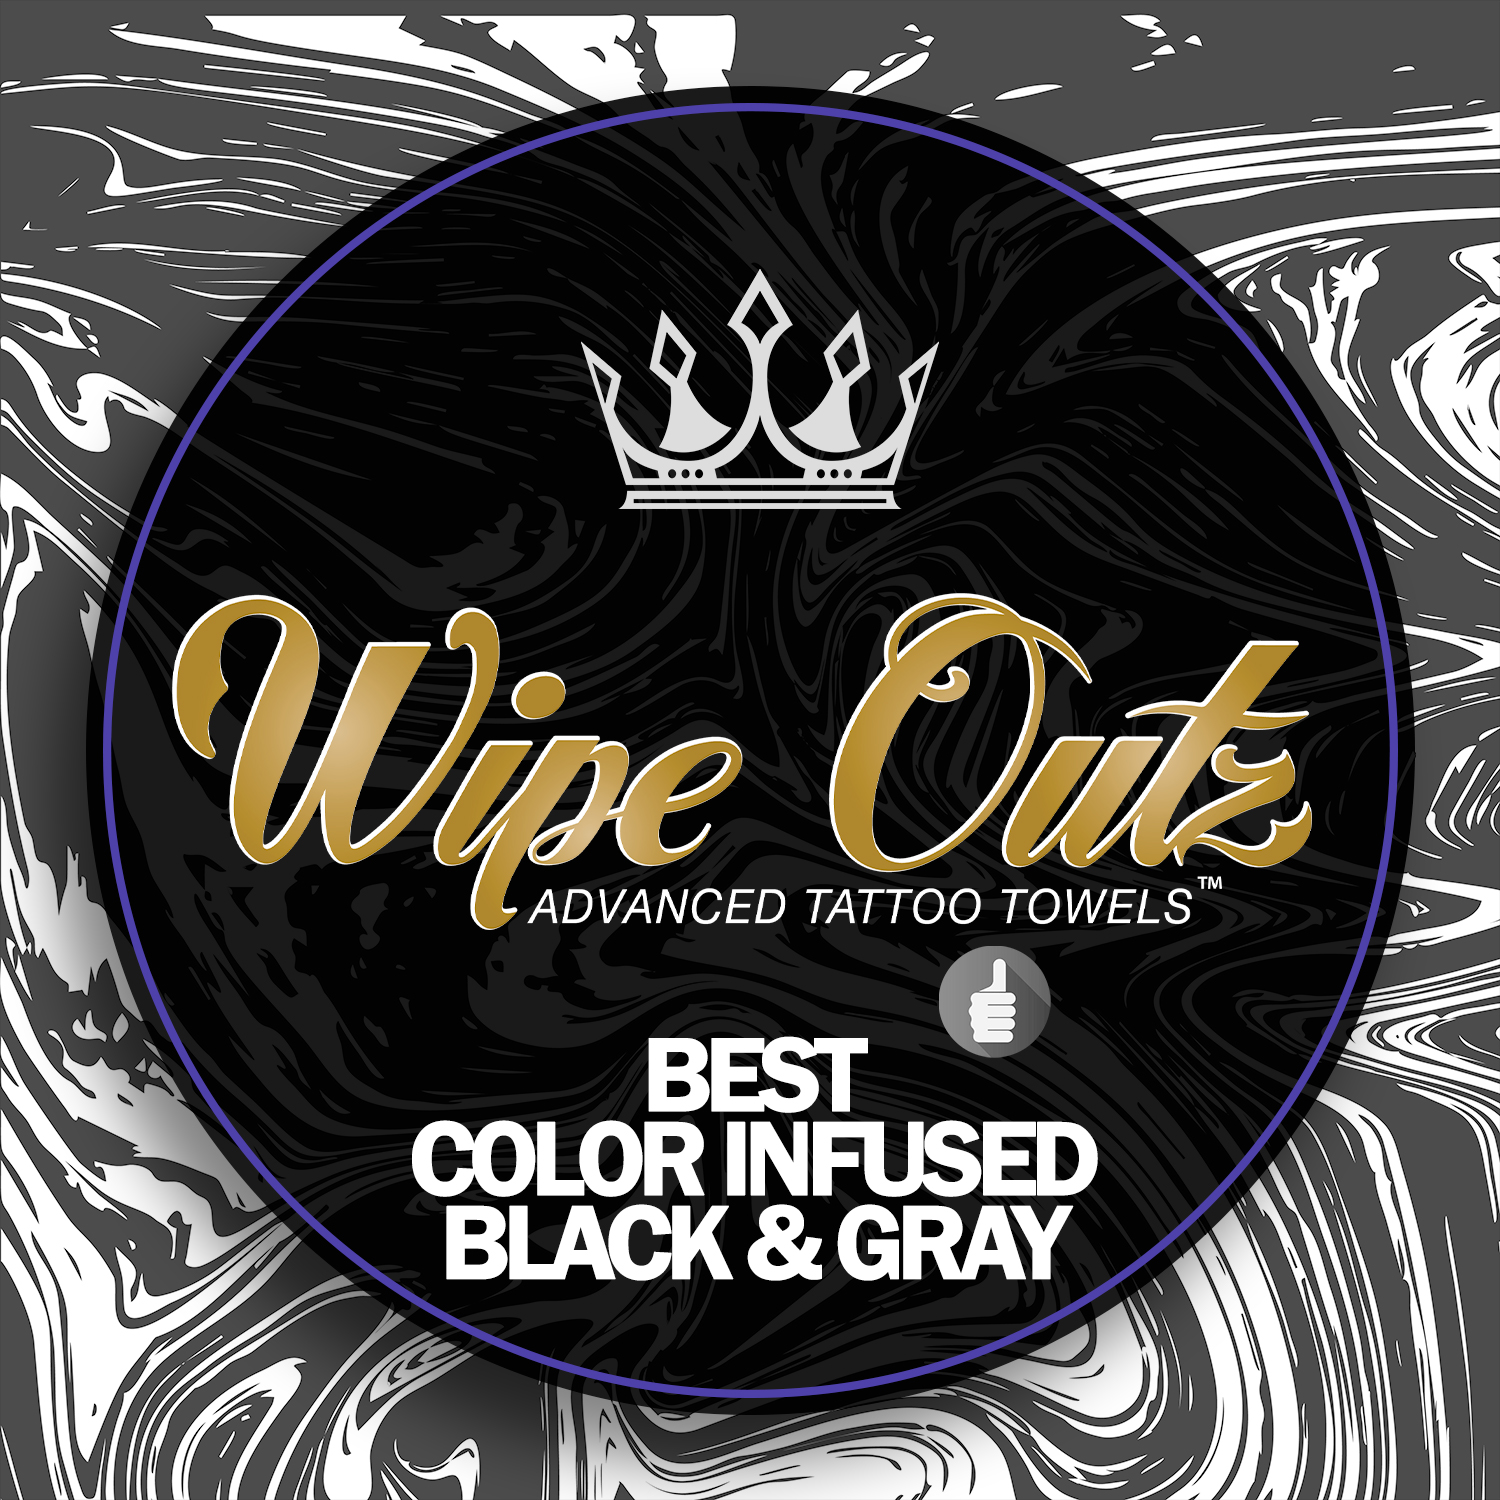 Best Color Infused Black & Gray Tattoos July 2019 | Wipe Outz